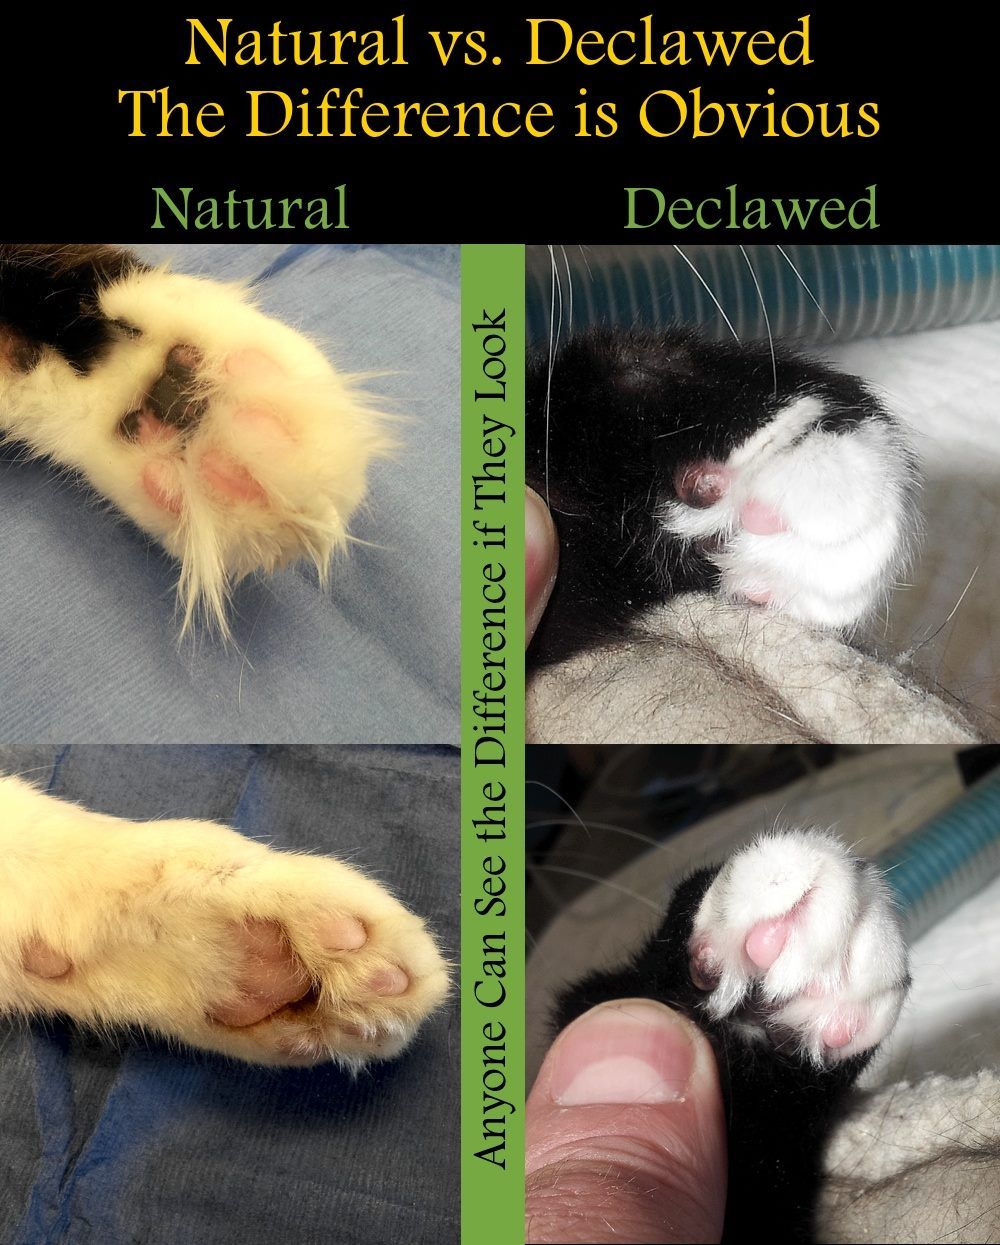 Https Www Facebook Com Animalark Animal Ark Is Minnesota S Largest No Kill Animal Welfare Organization After Seeing The Movie Soft Paws Paw Project Animals